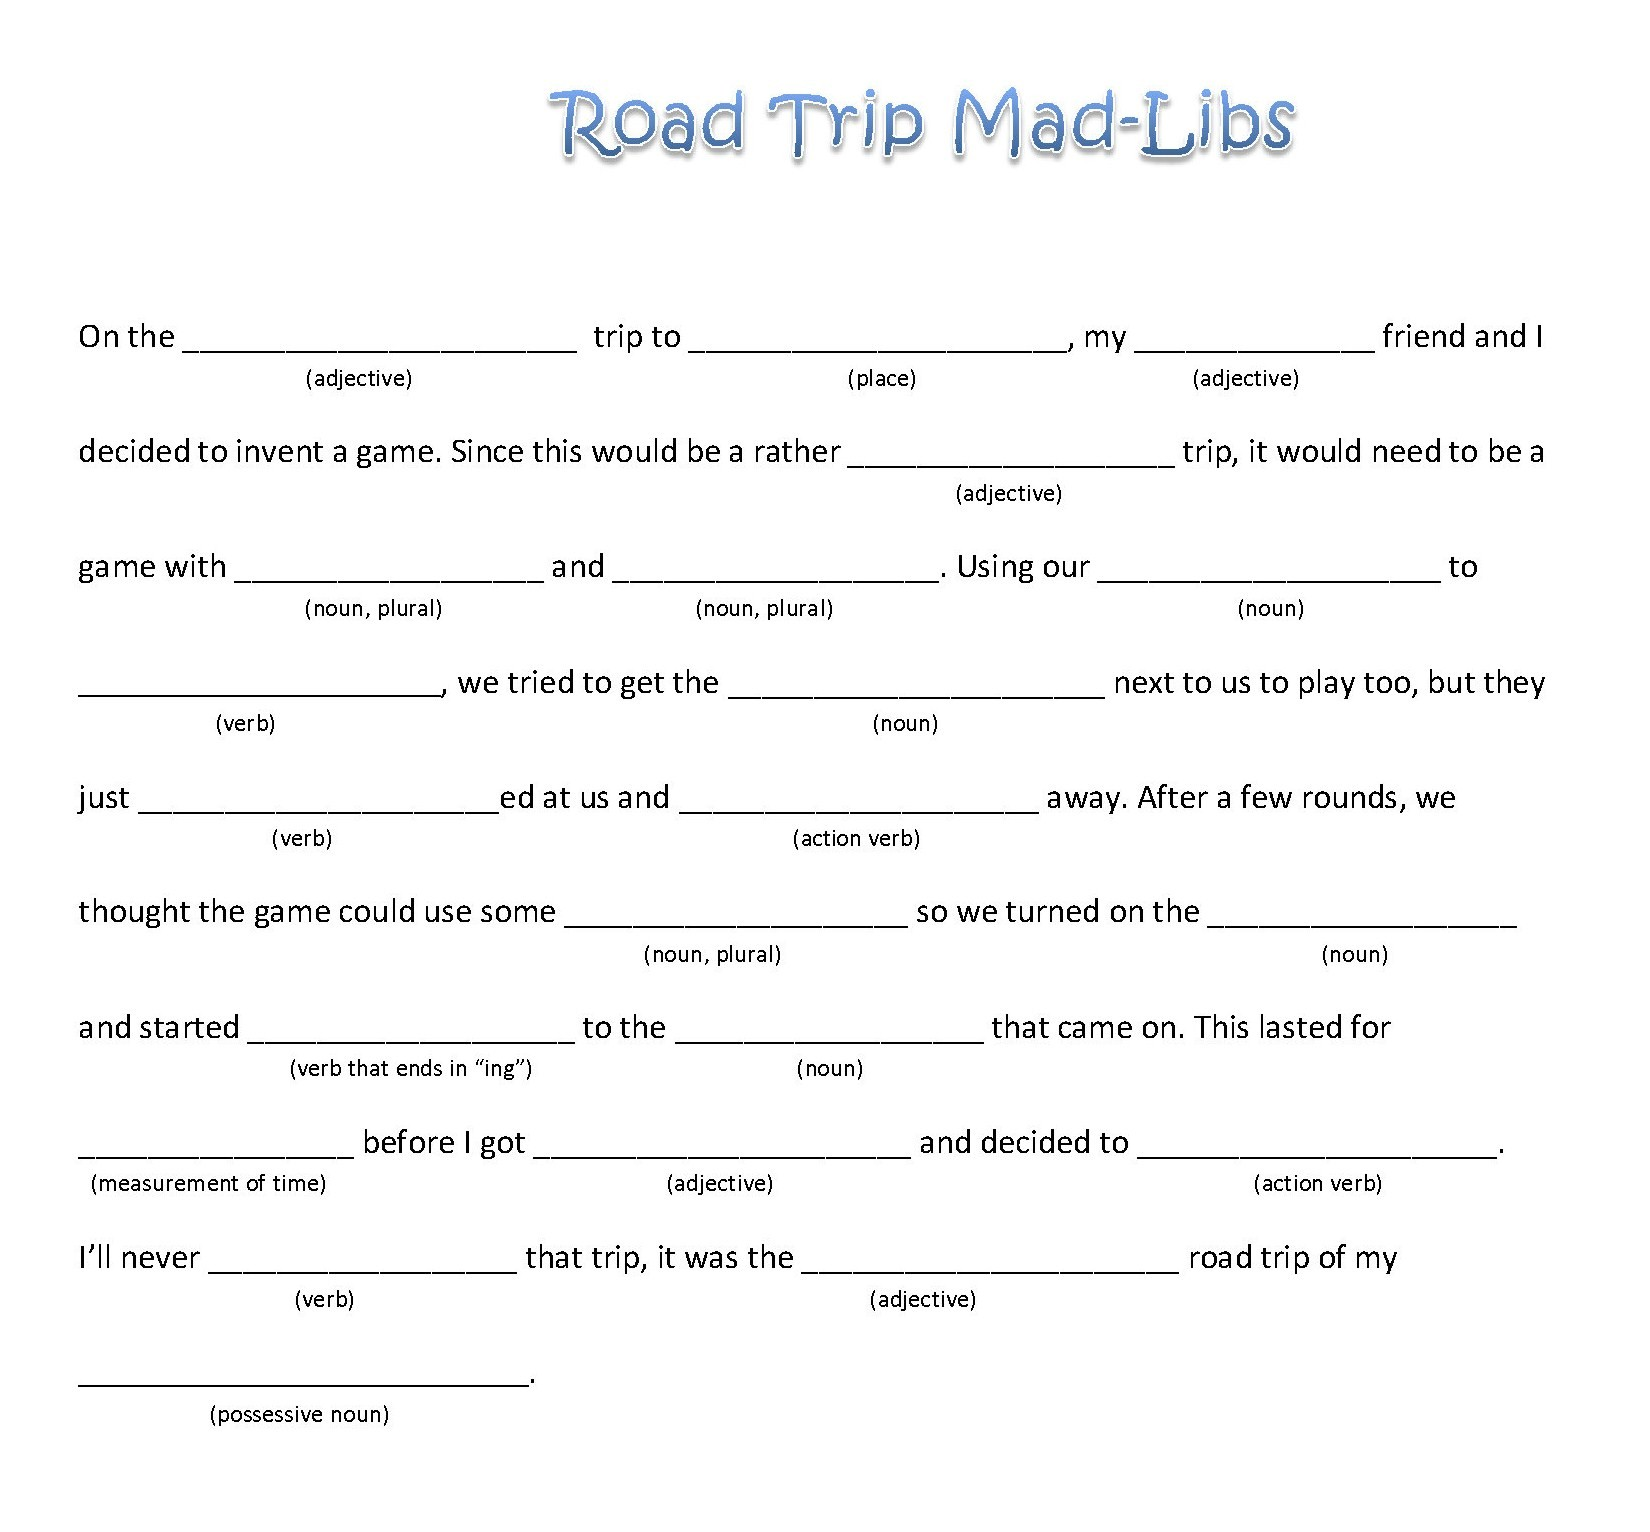 6 Images of Funny Blank Mad Libs Printable